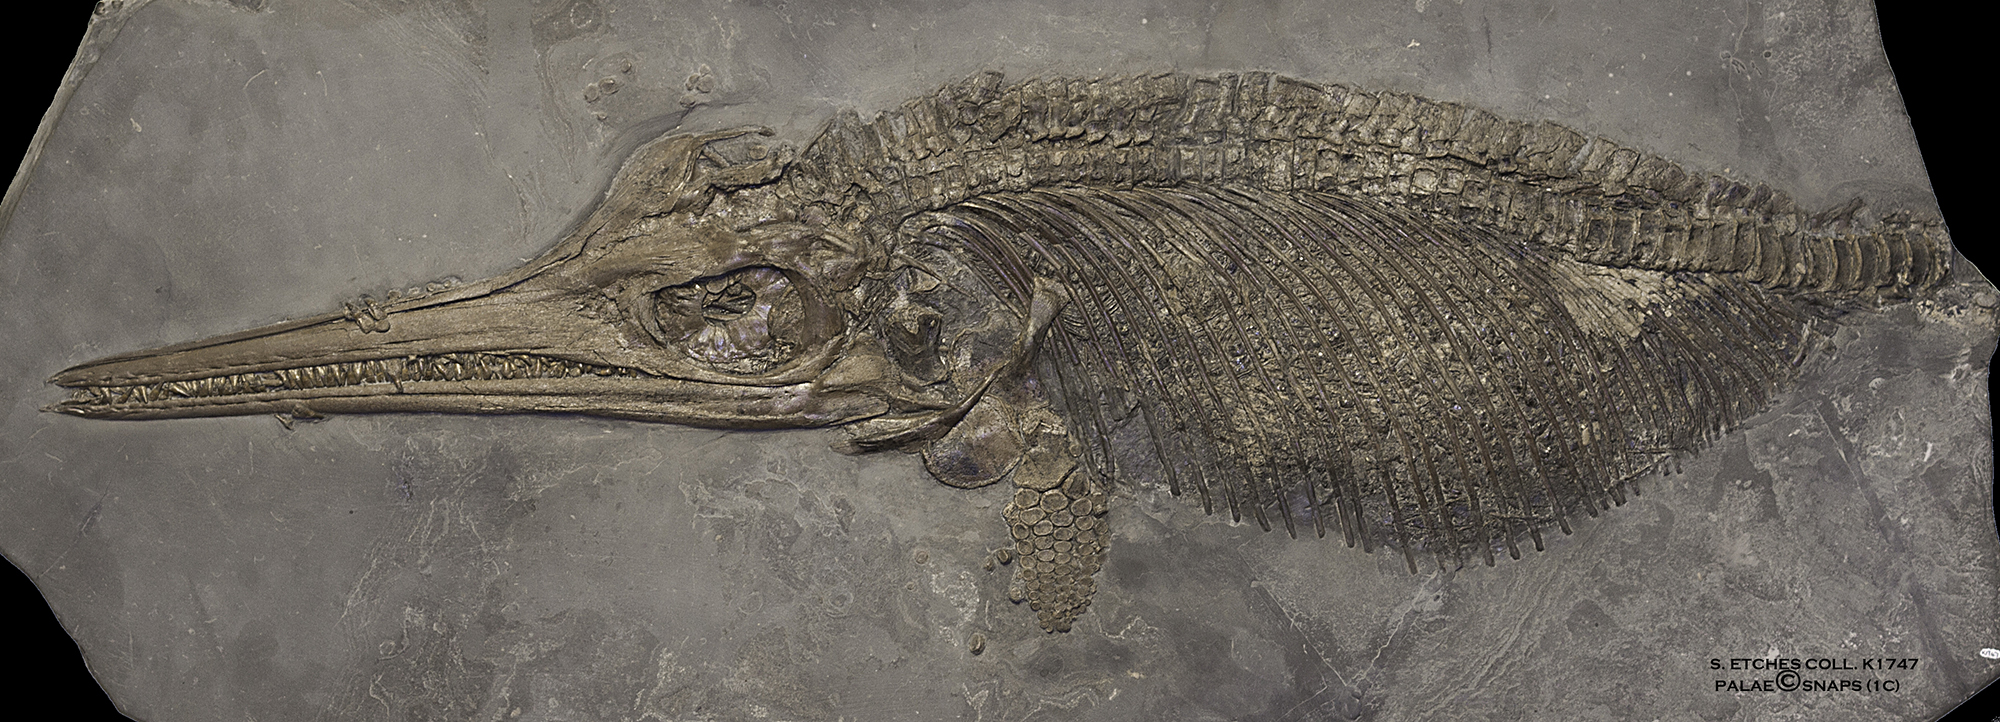 The Etches Collection - Museum of Jurassic Marine Life, Ichthyosaur